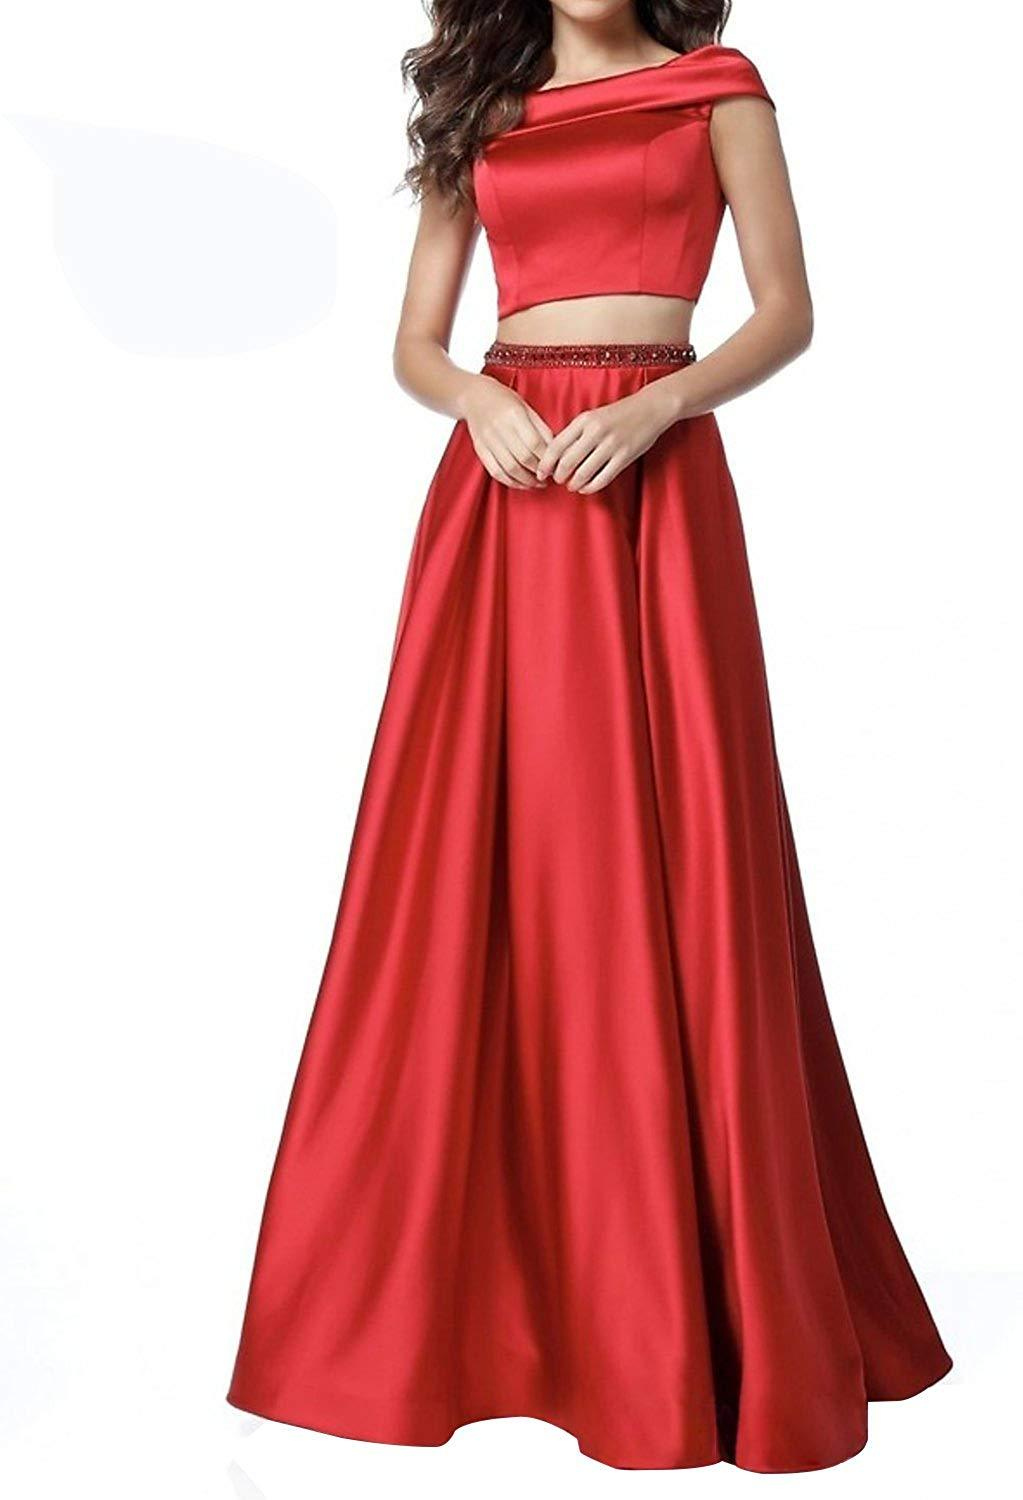 Two Piece Off Shoulder Prom Dress Long Satin Beaded Evening Dresses with Pockets